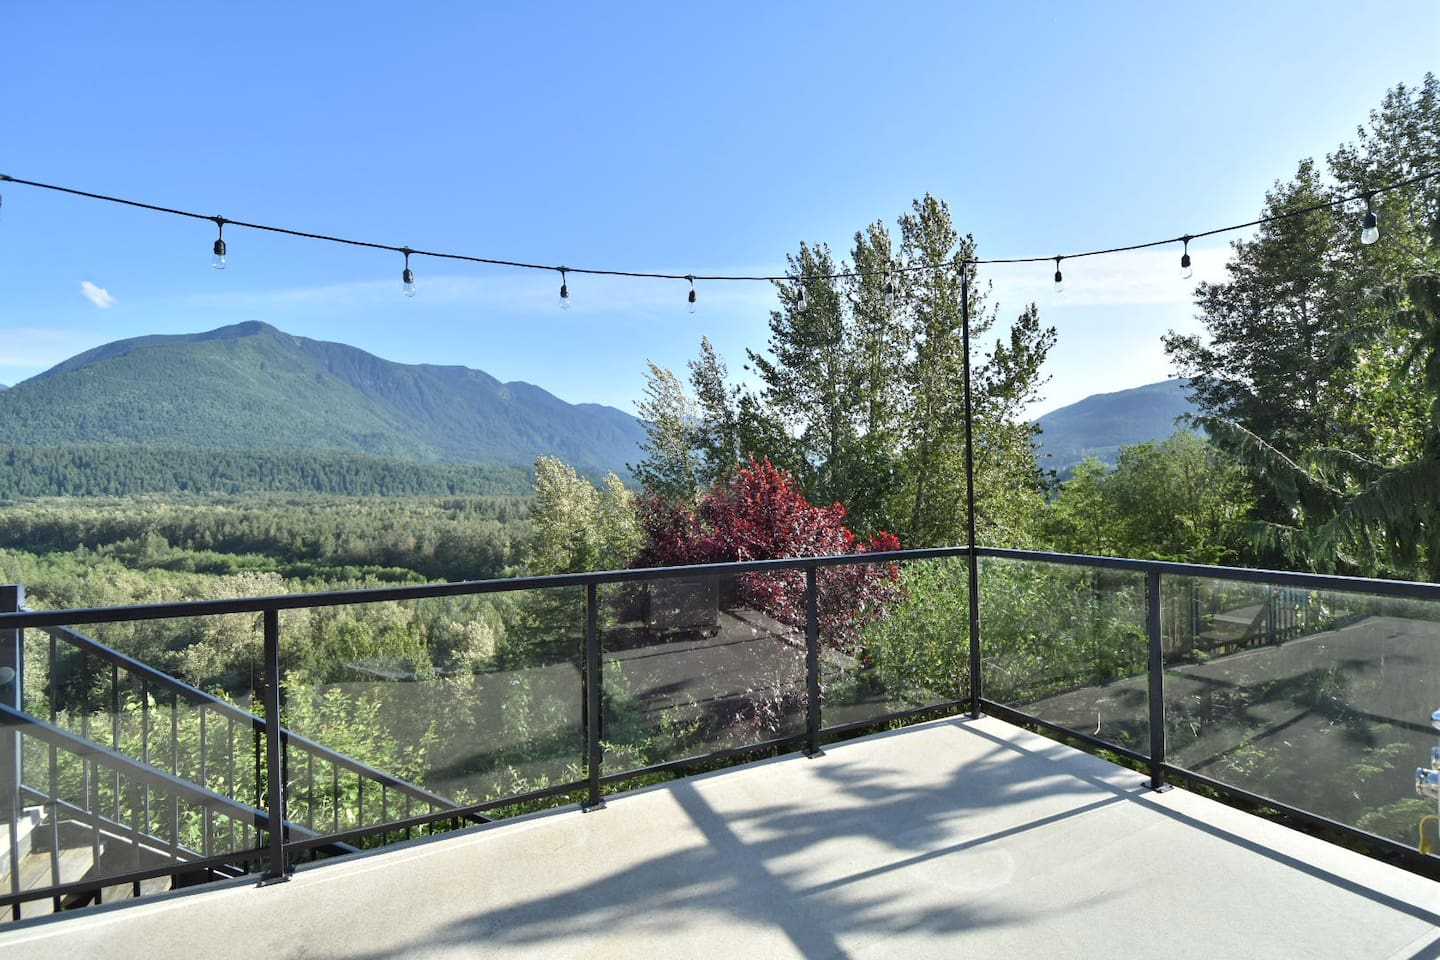 270 degree views of the vedder river valley and mountains and trees